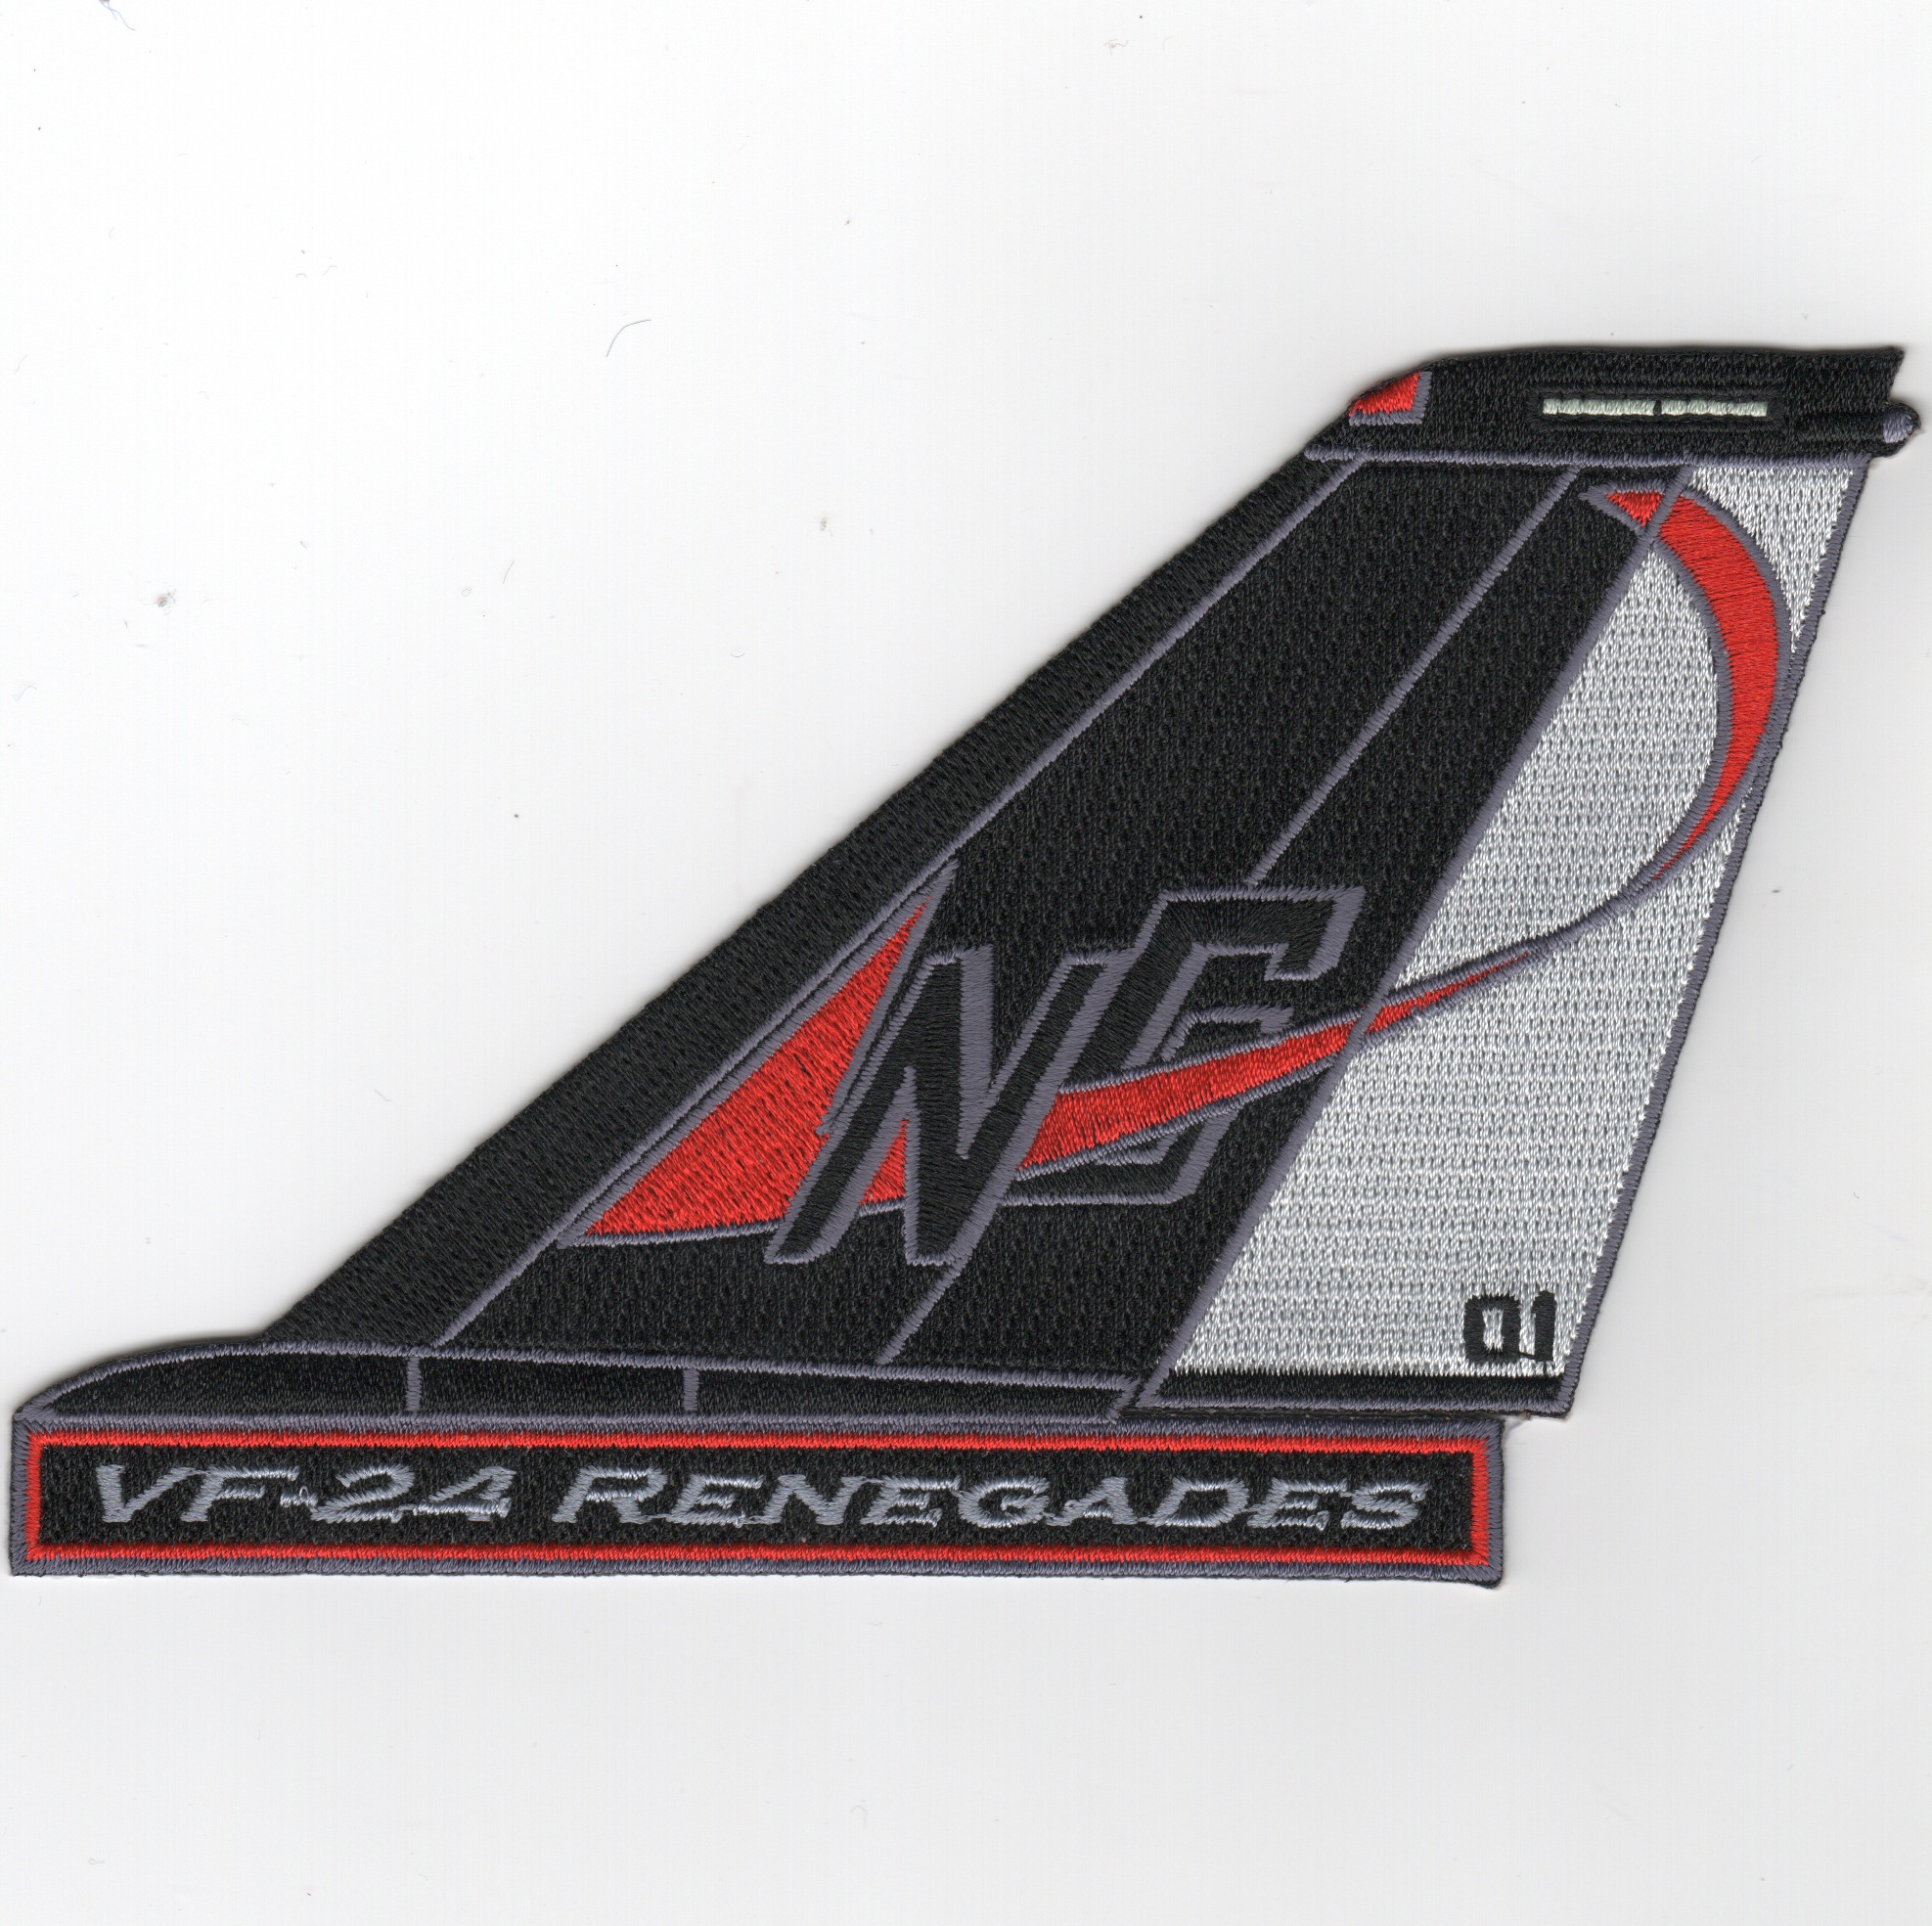 VF-24 F-14 Tomcat TailFin (Text)